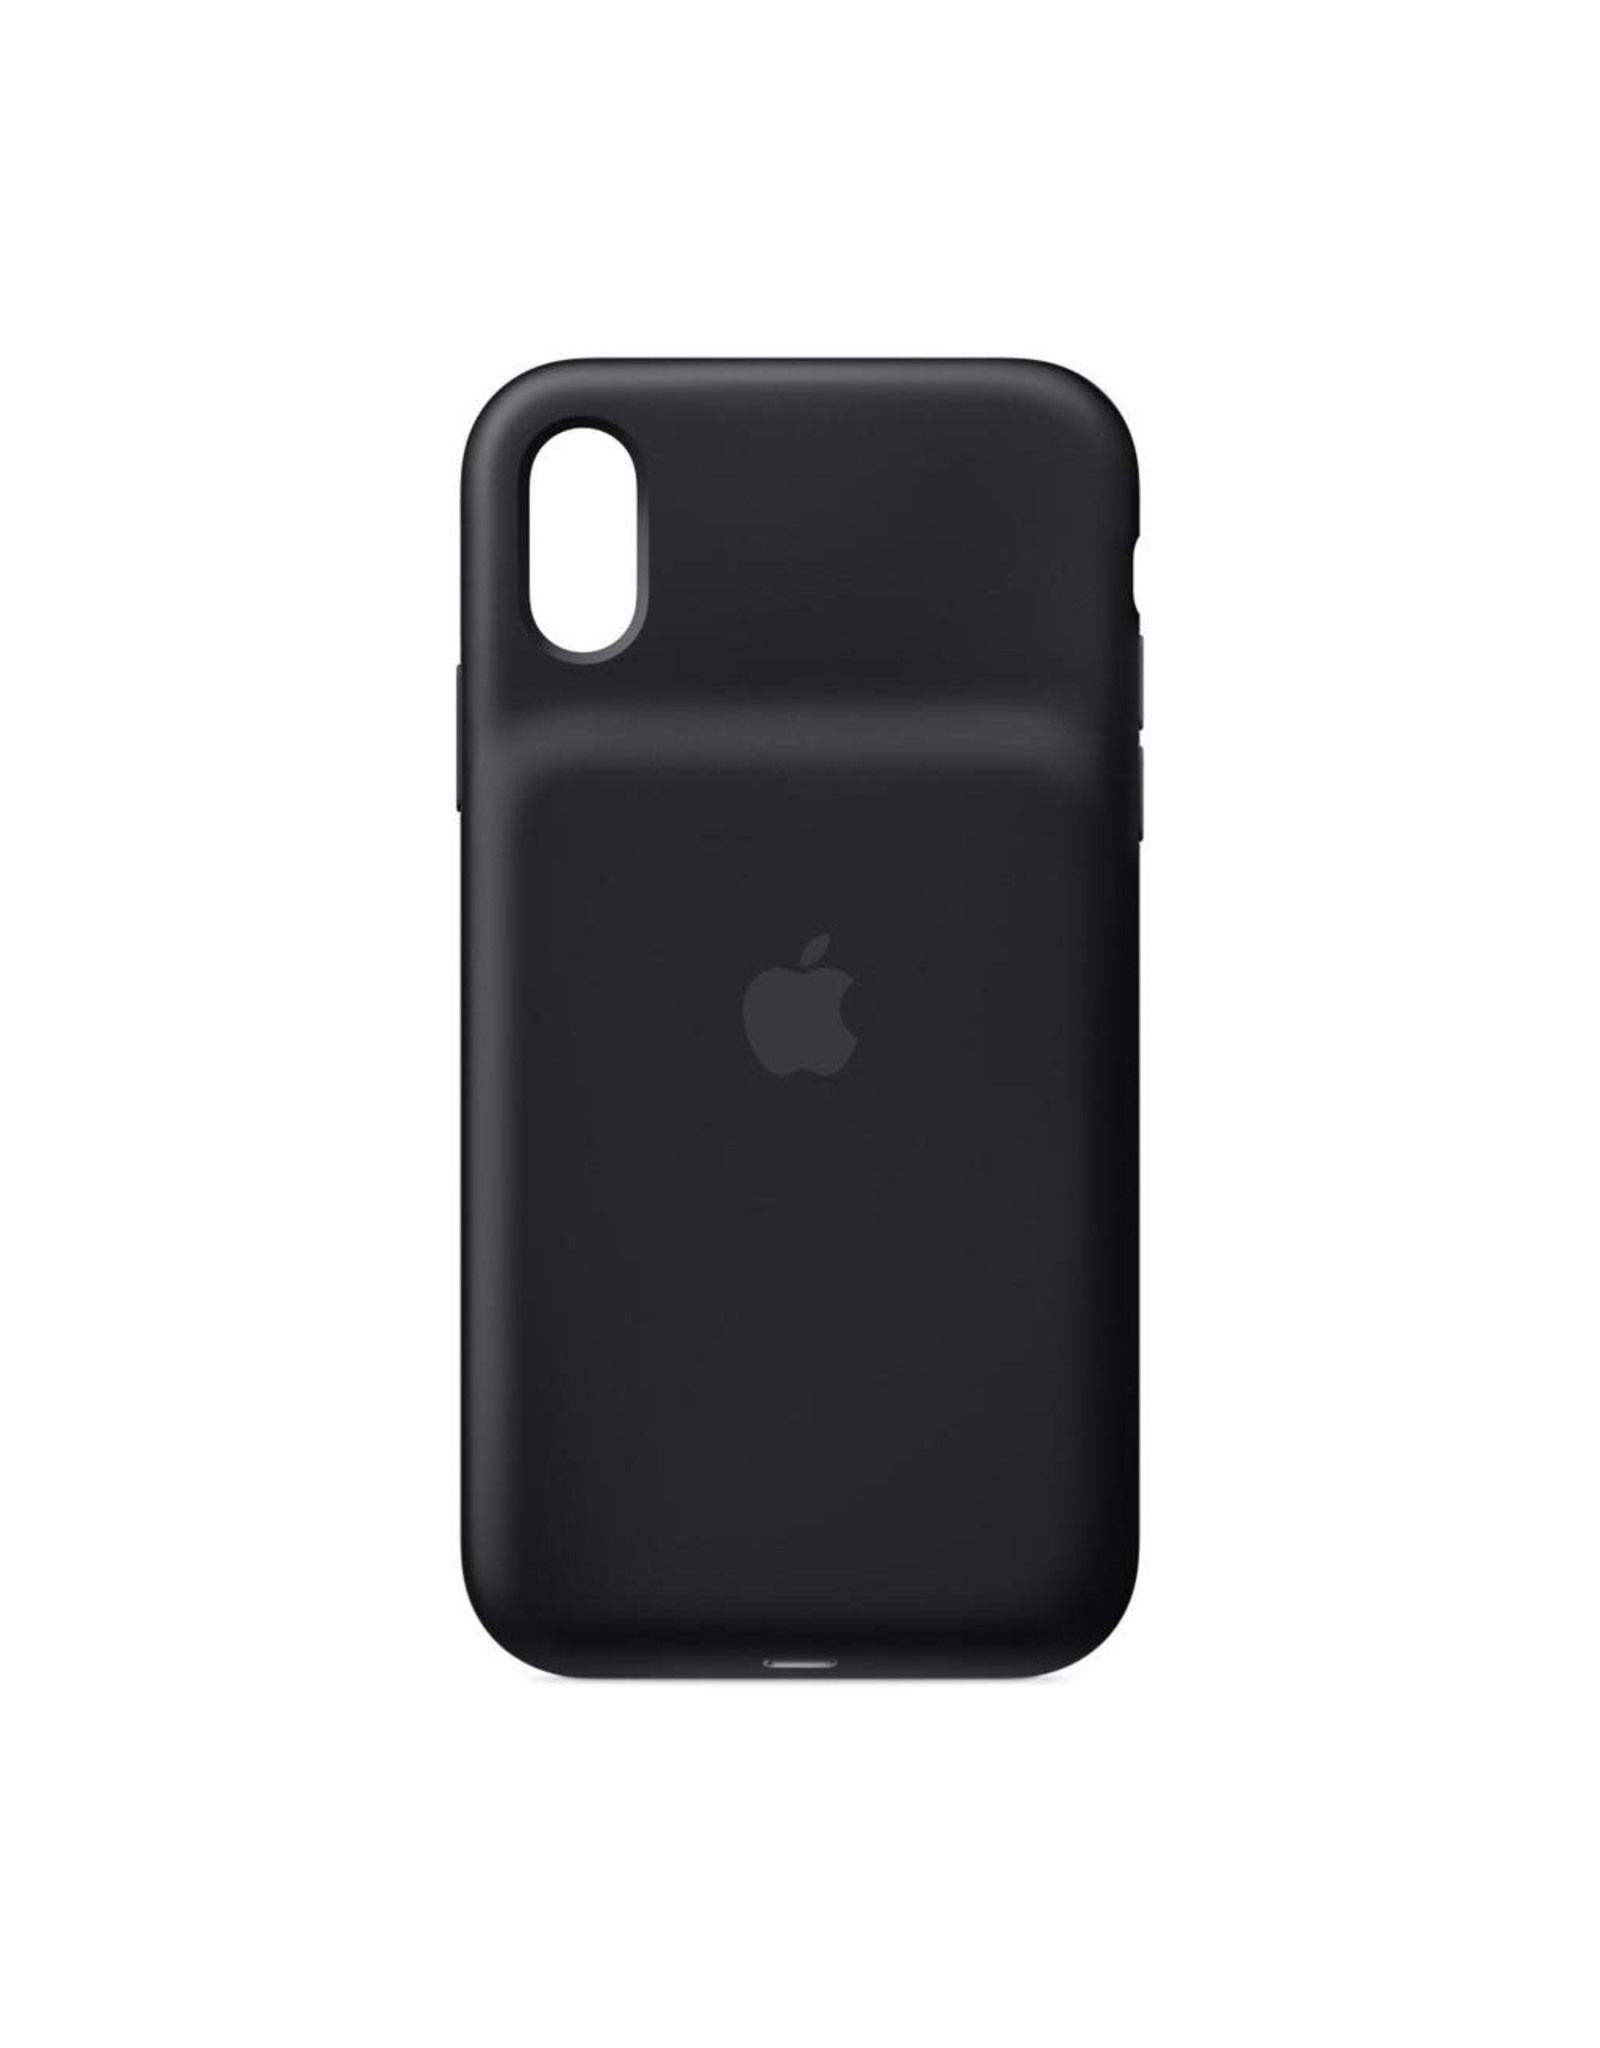 Apple Apple iPhone XR Smart Battery Case BLACK